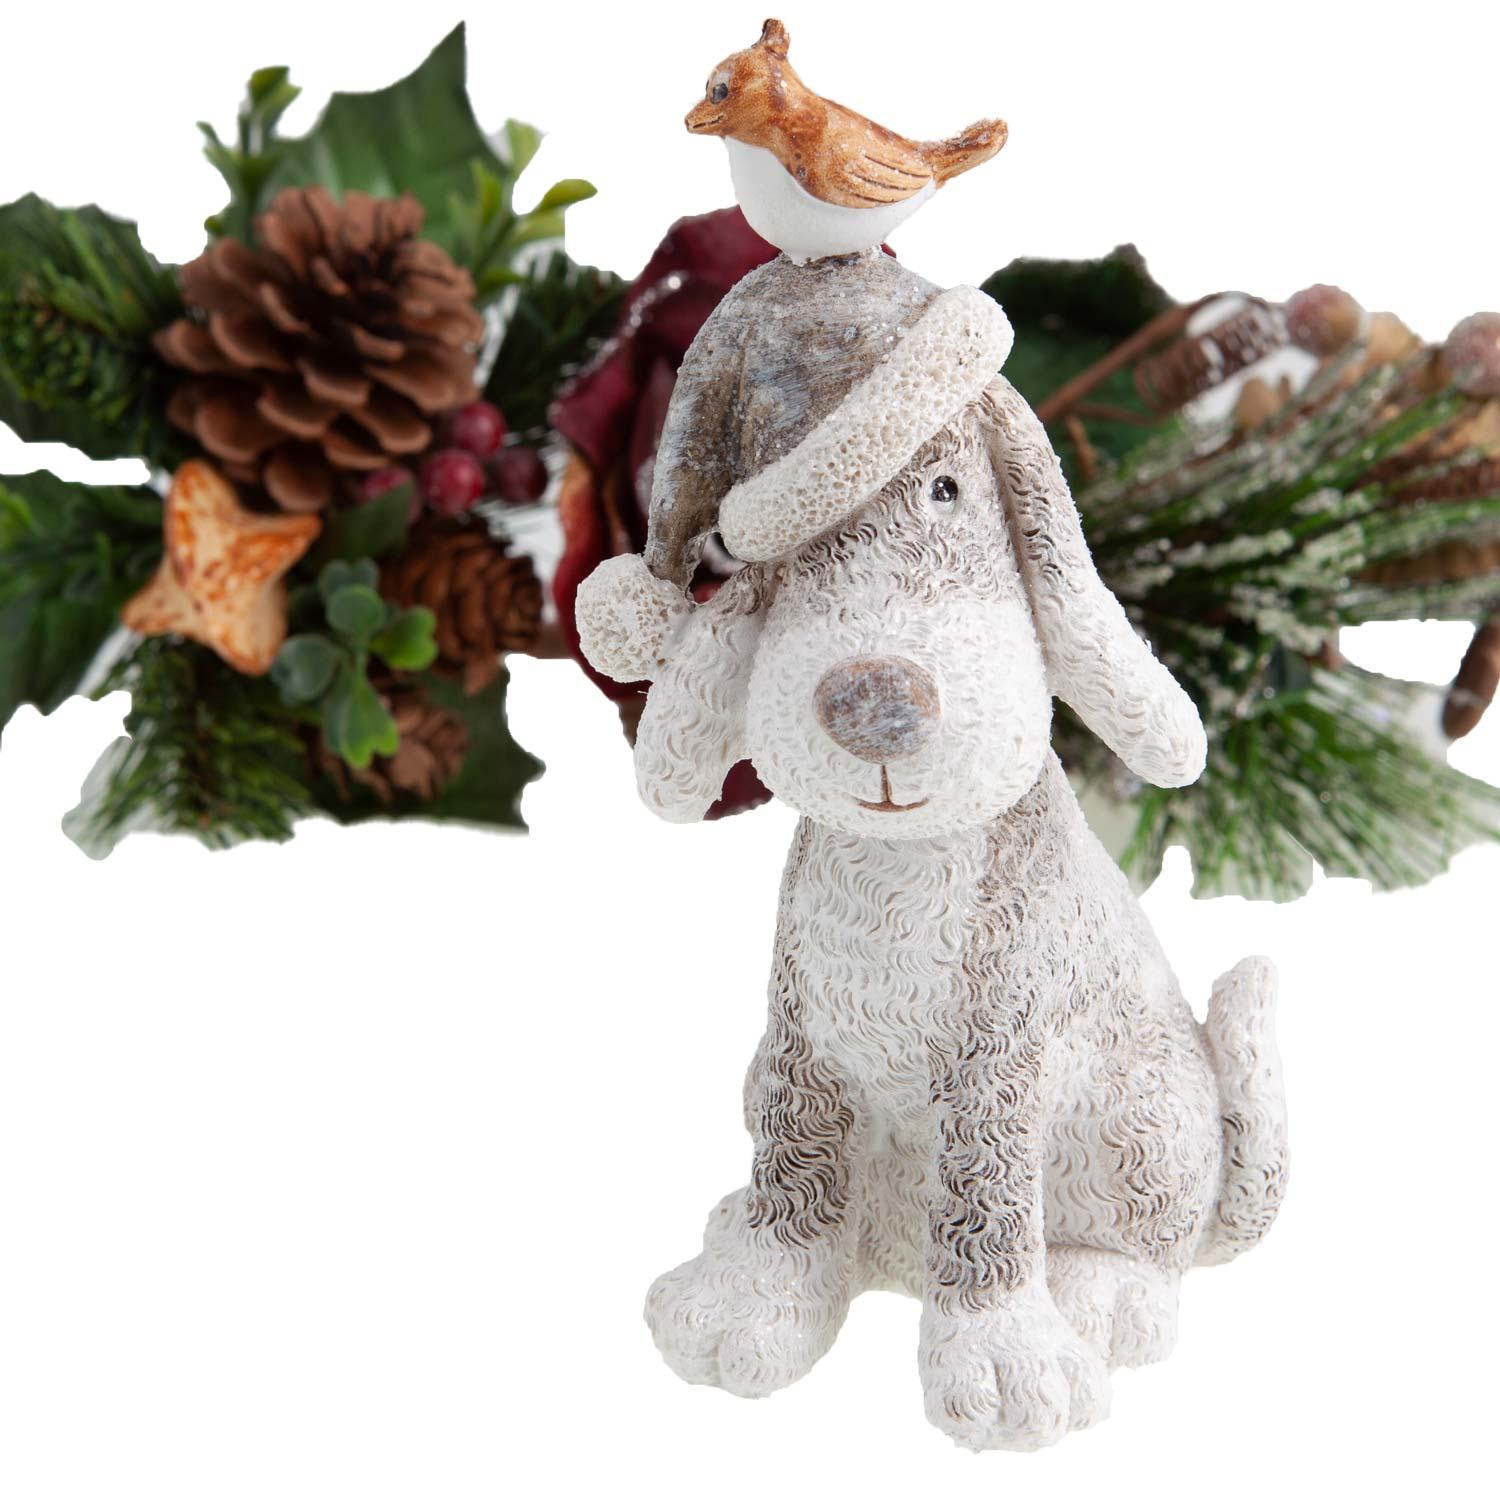 Dog Krazy Gifts - Dog in Hat with Bird Christmas Decoration - available from the Christmas Grotto at DogKrazyGifts.co.uk